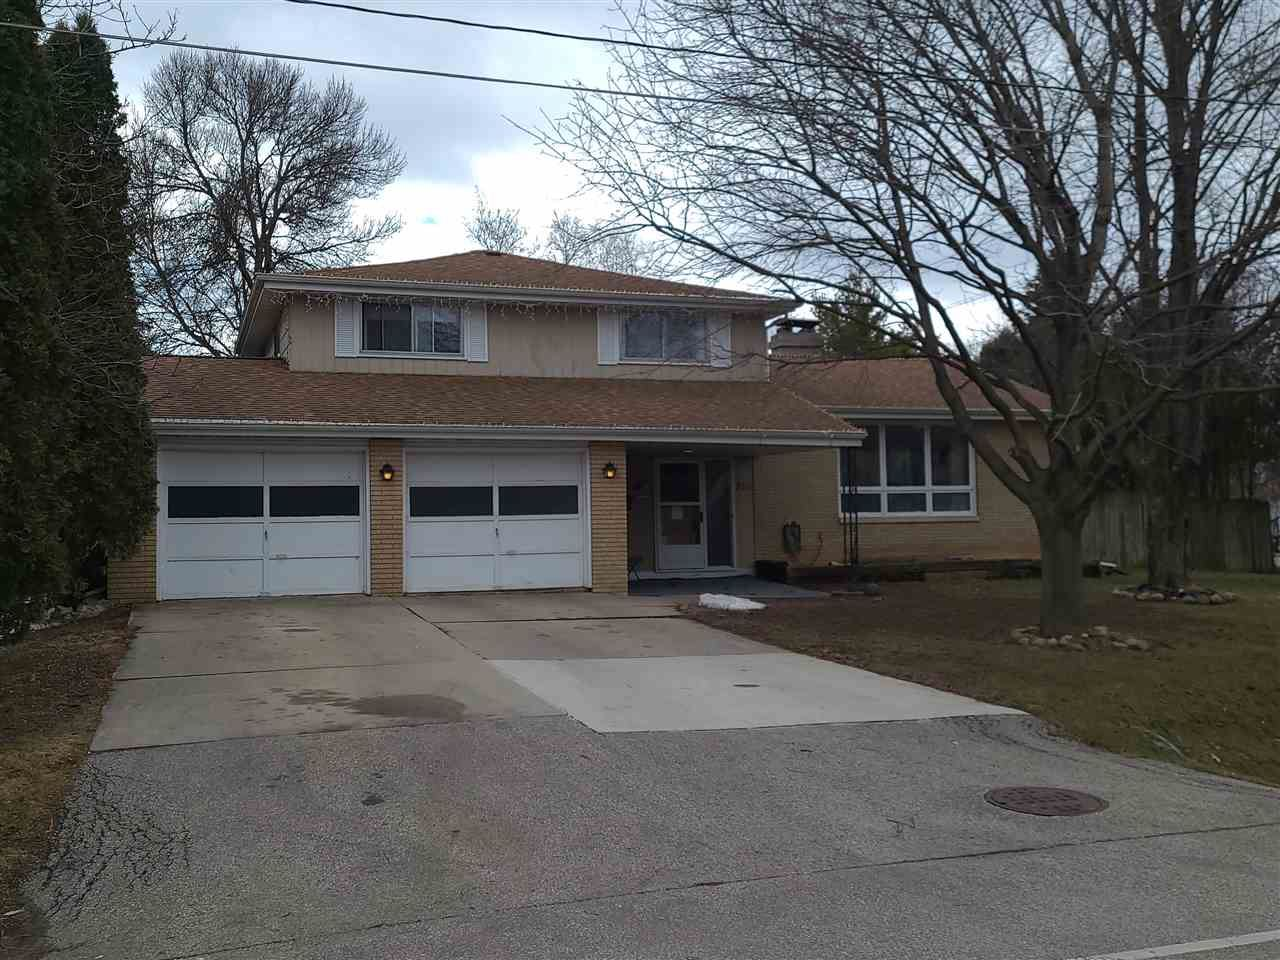 201 W WILSON Avenue, Appleton, WI 54915 - MLS#: 50236398